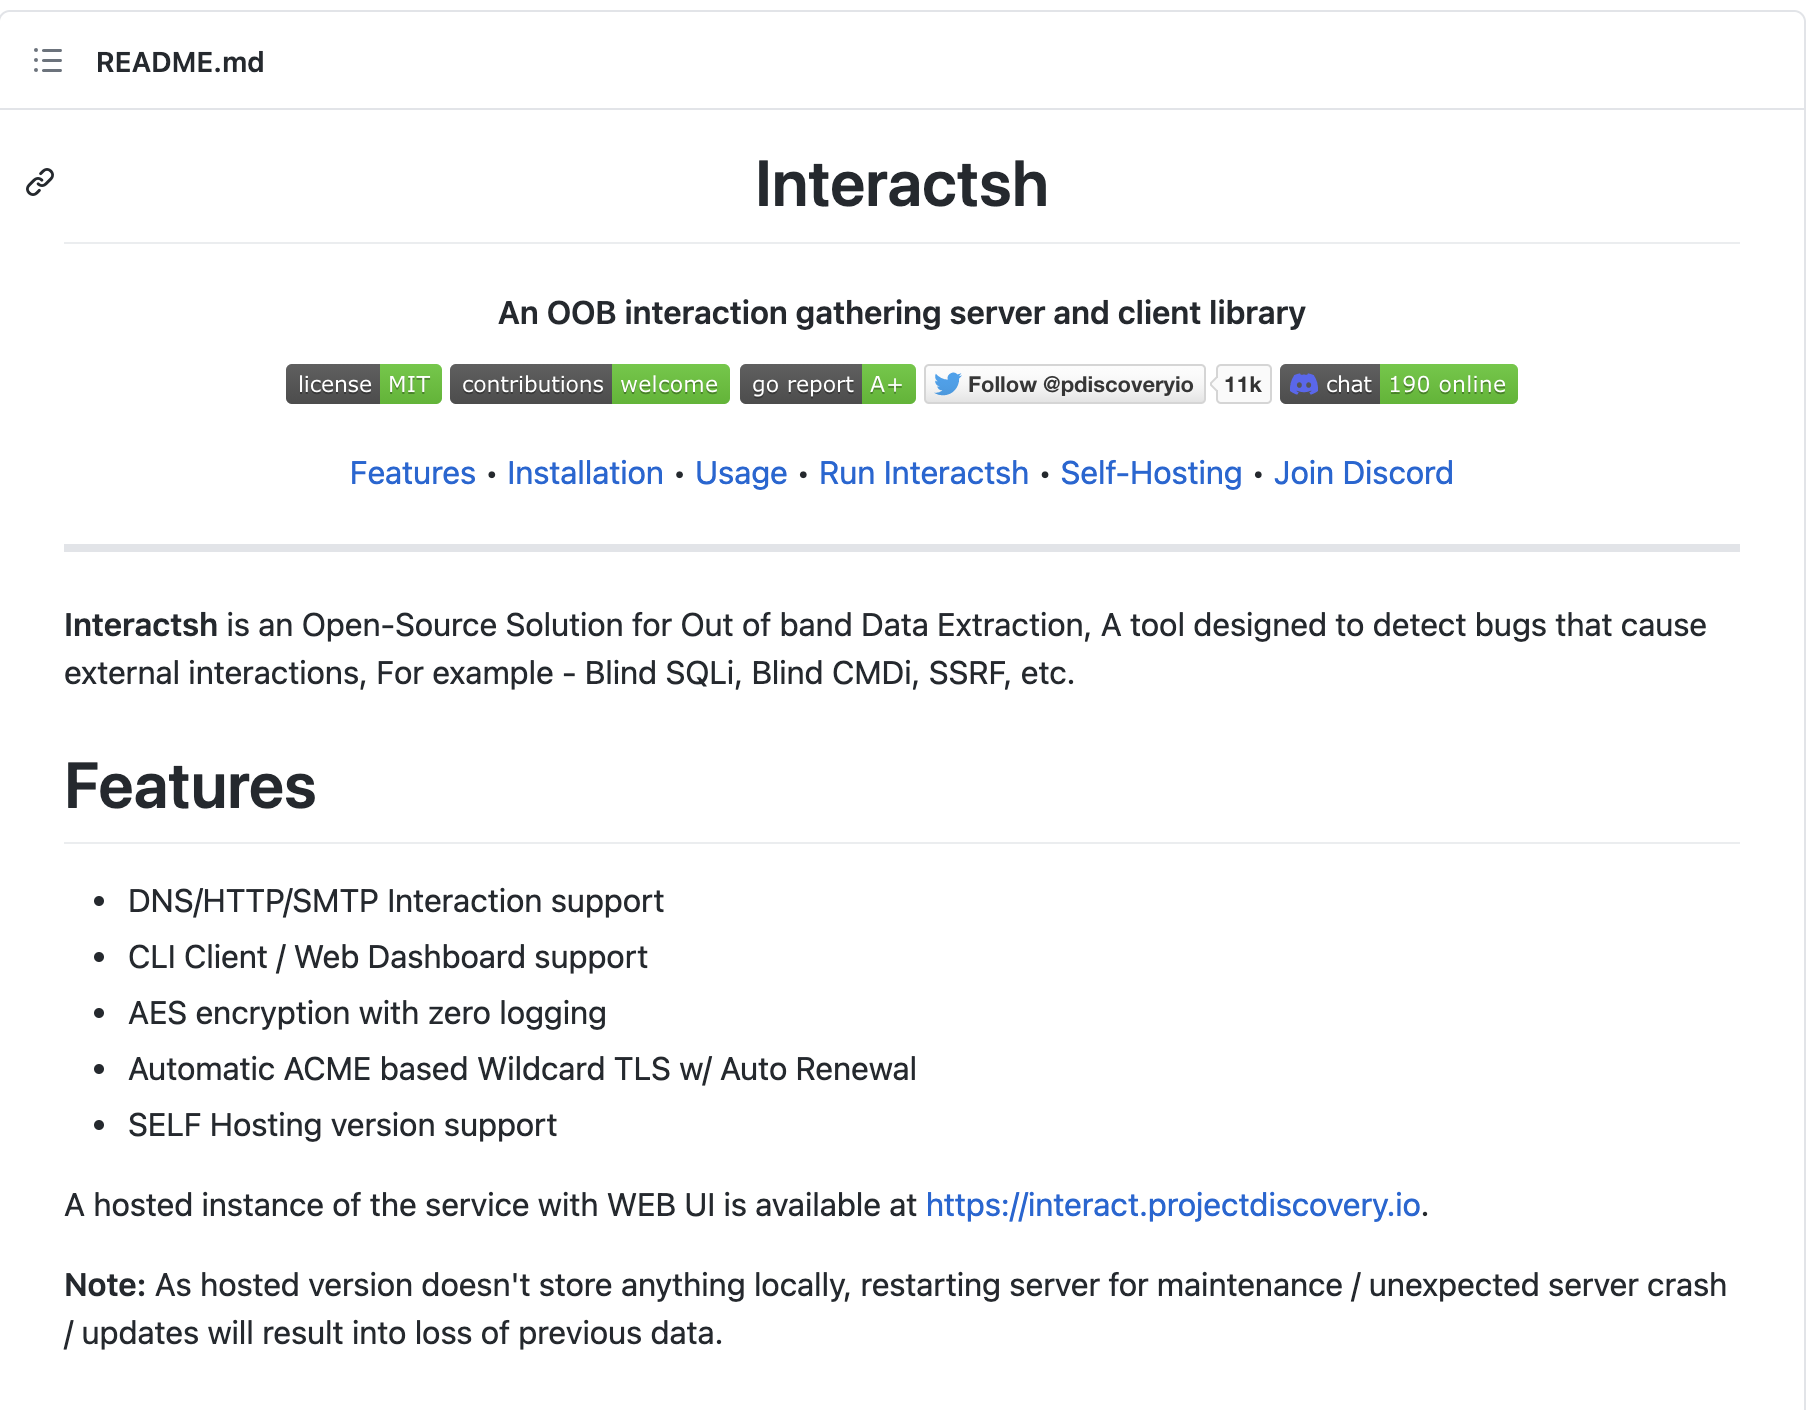 """Interactsh's GitHub page describes """"an Open-Source Solution for Out of band Data Extraction, A tool designed to detect bugs that cause external interactions, For example - Blind SQLi, Blind CMDi, SSRF, etc."""""""